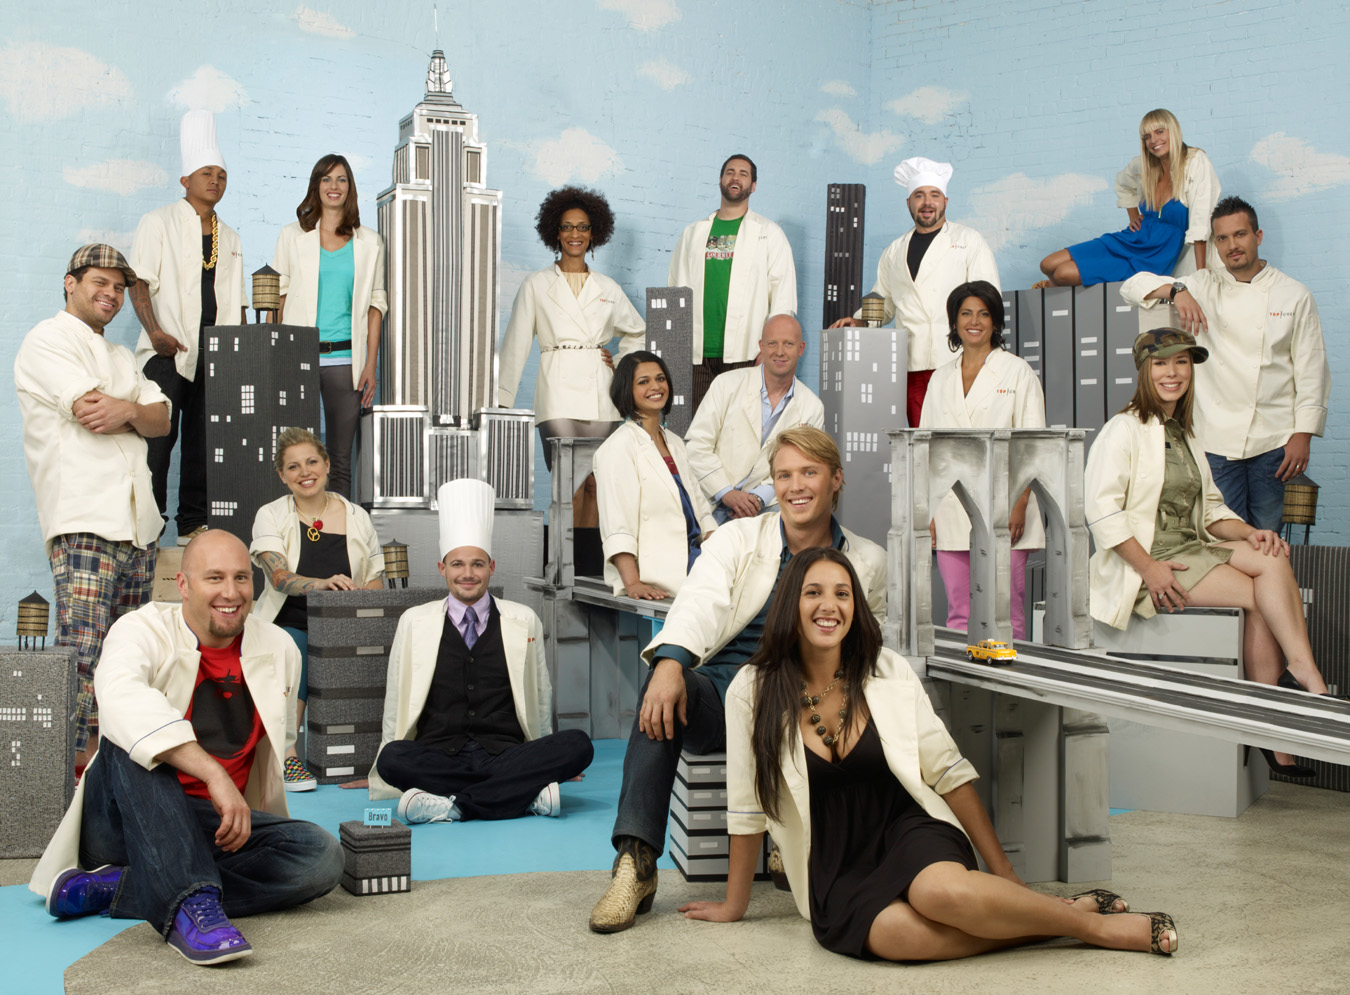 Meet the new Top Chef cast